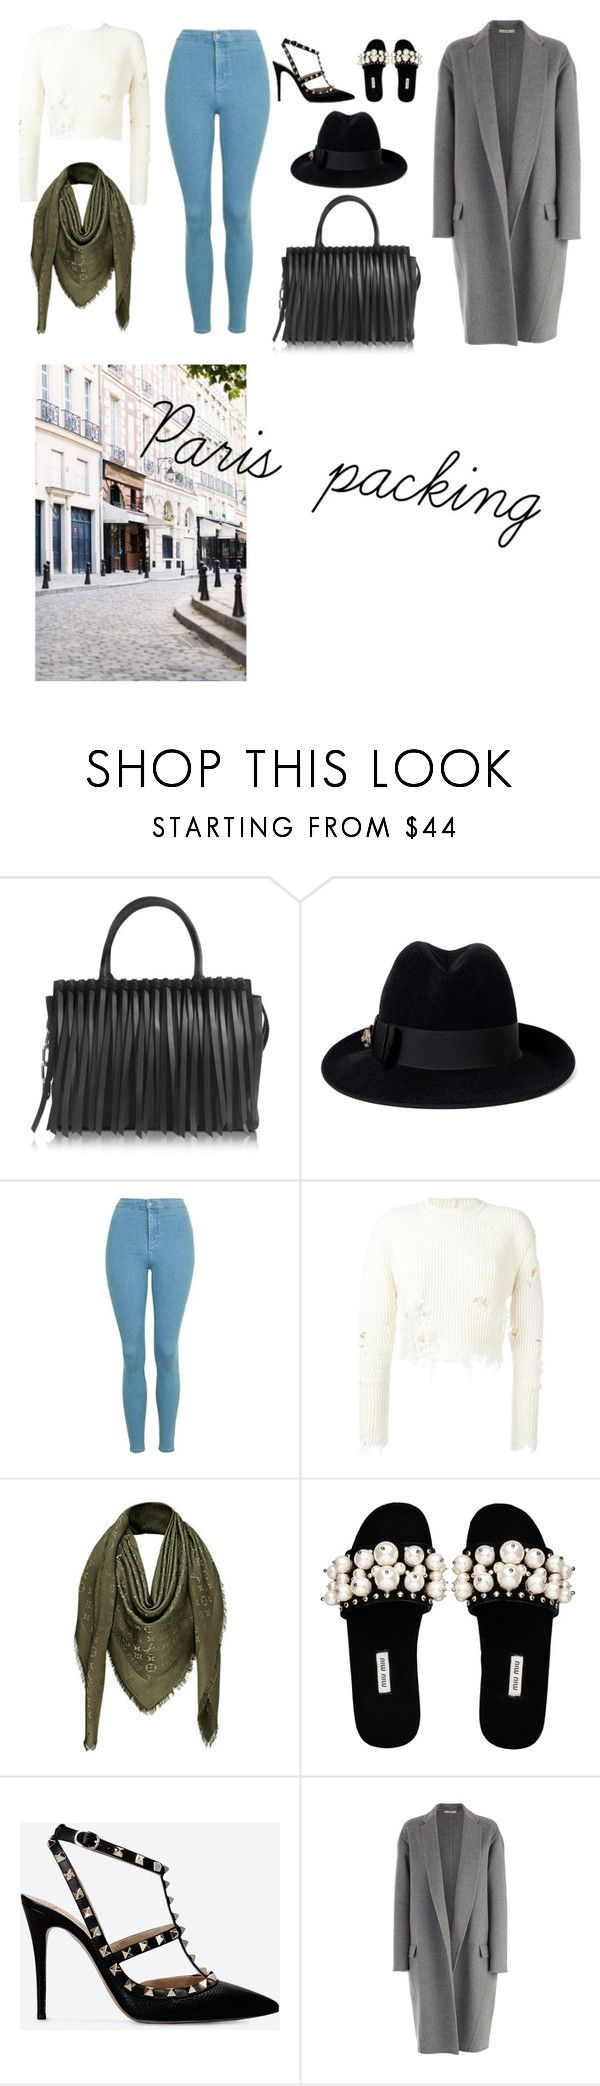 """""""Paris packing"""" by avahuszar ❤ liked on Polyvore featuring Alexander Wang, Gucci, Topshop, adidas Originals, Louis Vuitton, Miu Miu, Valentino, CÉLINE and Dauphine"""